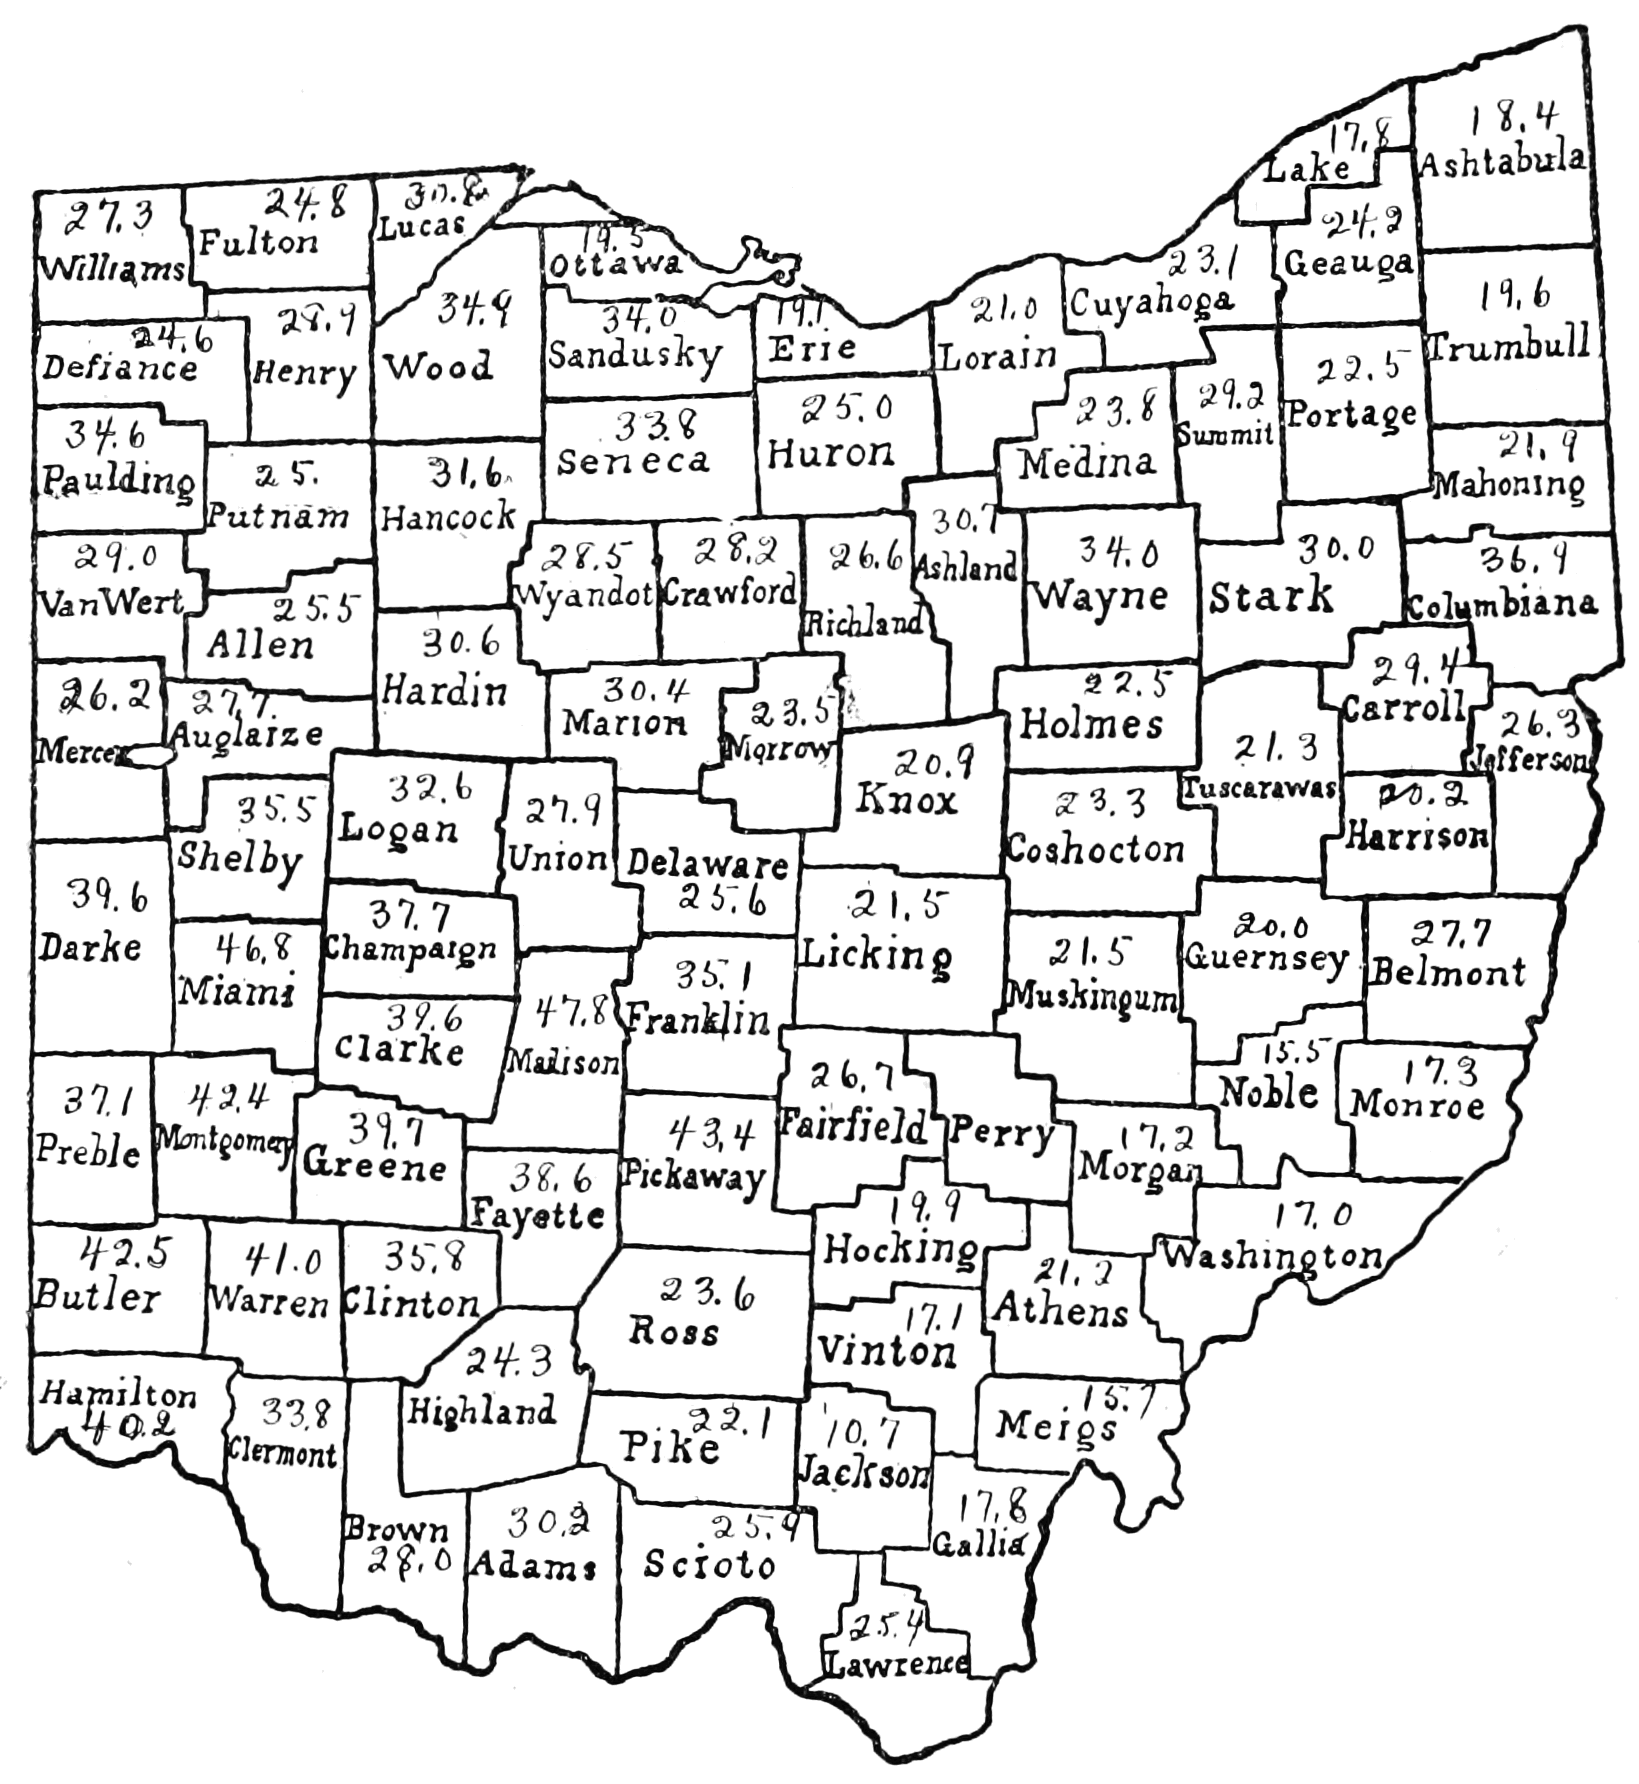 PSM V72 D046 Tenant farmers of ohio based on the 12th census of 1900.png